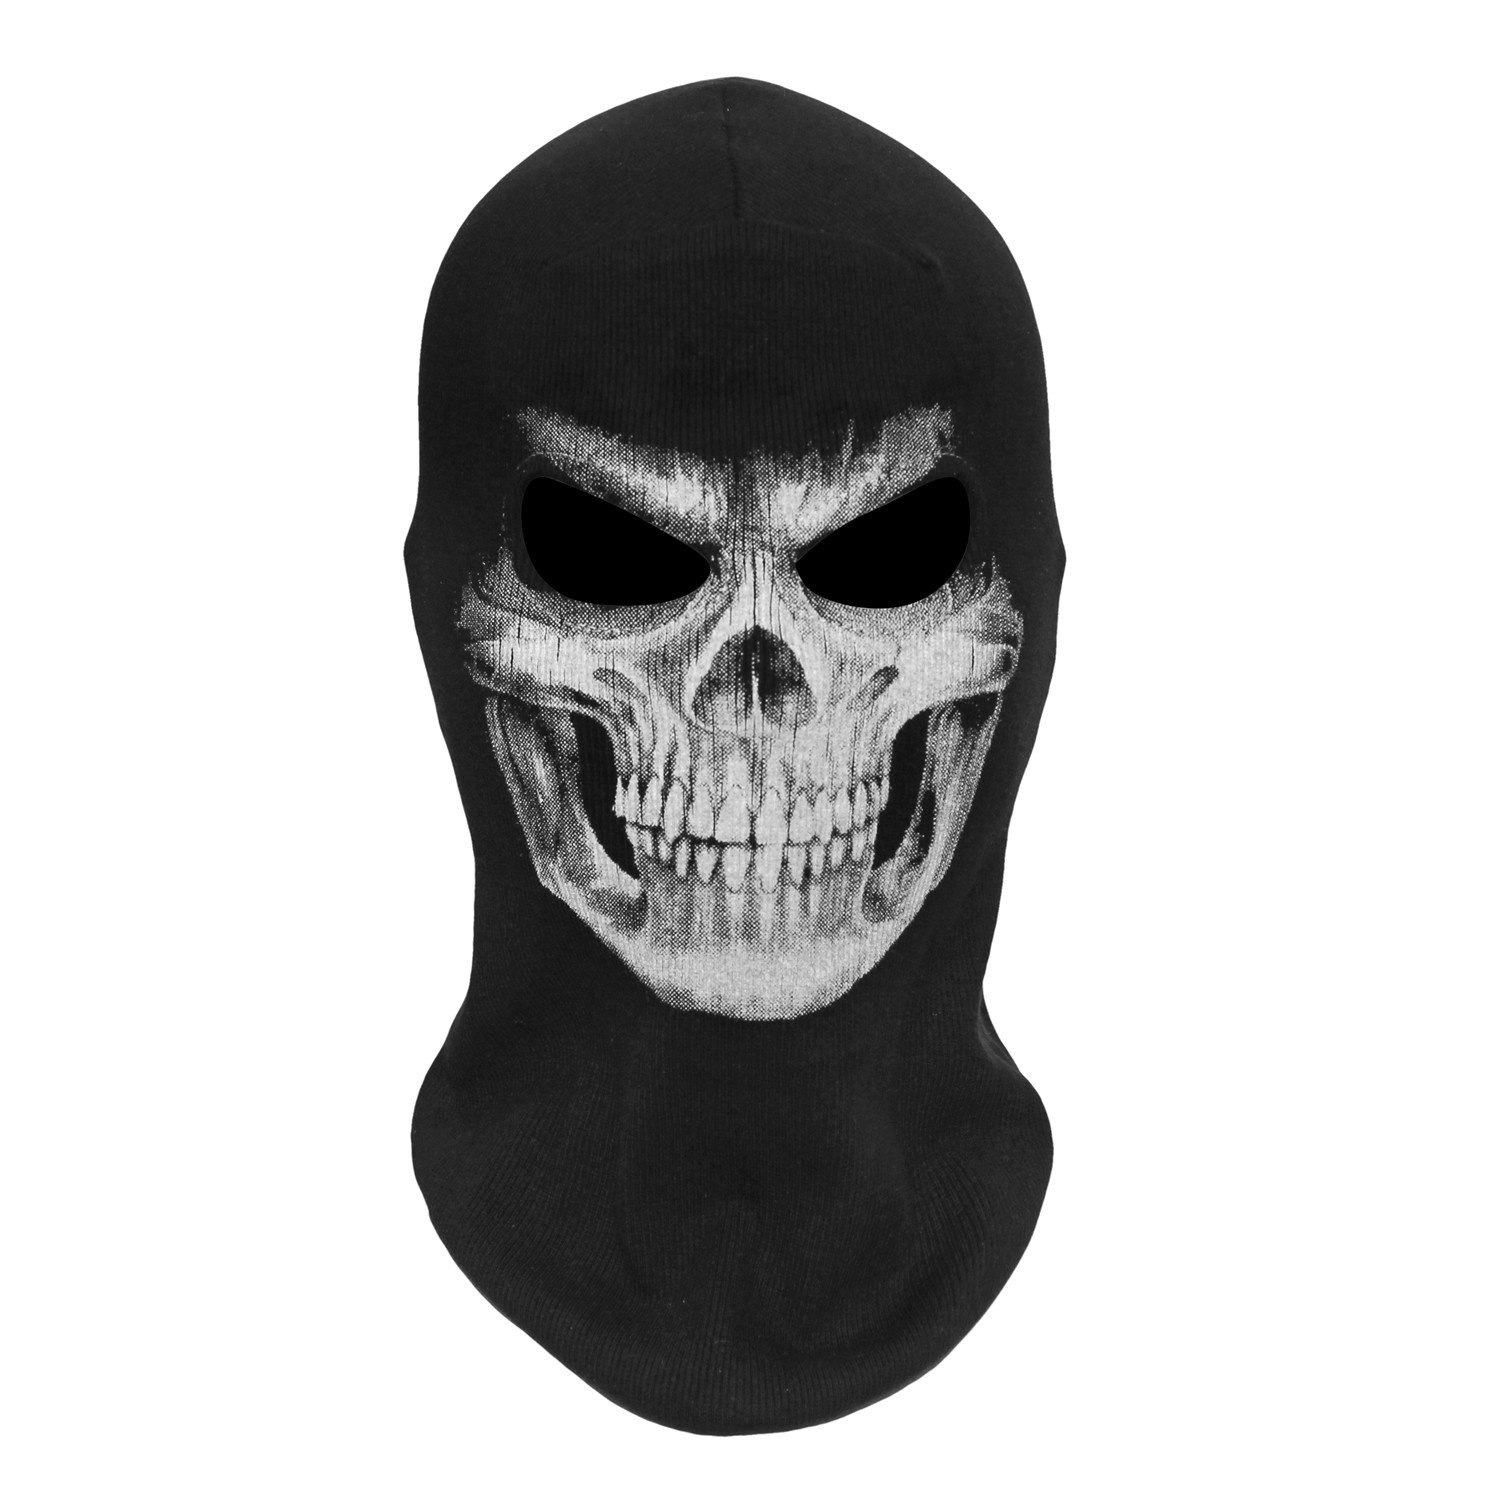 JIUSY Thick Skeleton Skull Ghost Death Halloween Balaclava Face Mask for Cosplay Costume